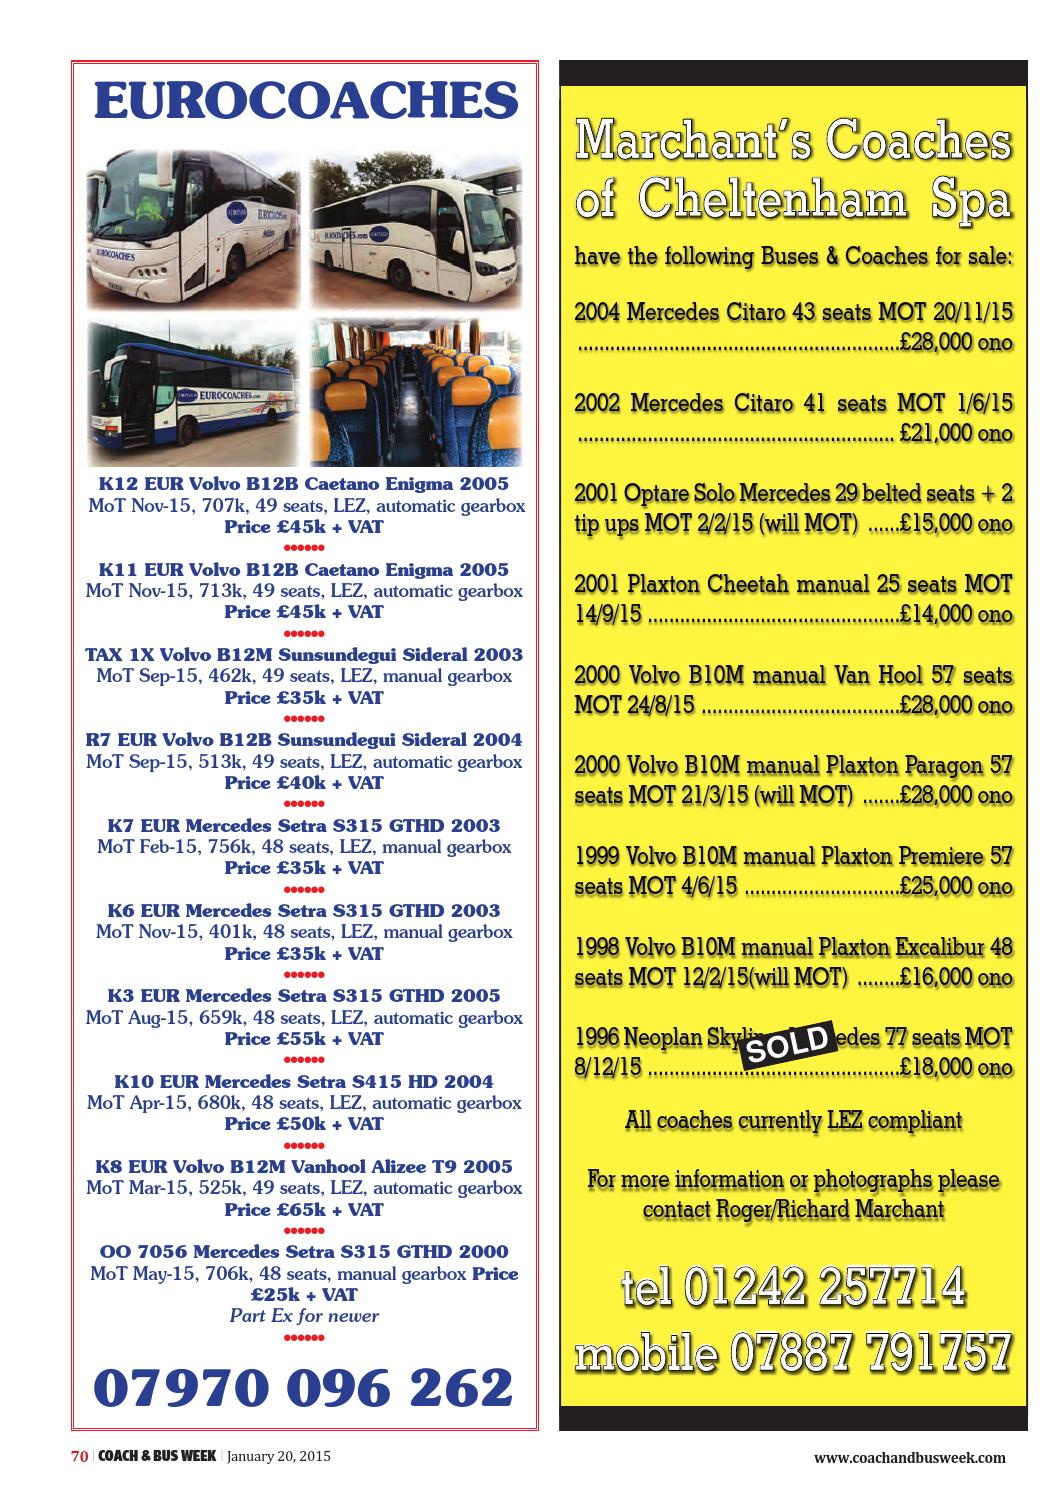 hight resolution of 1992 volvo b10m plaxton paramount manual 53 seats array coach u0026 bus week issue 1172 by coach and bus week u0026 group travel